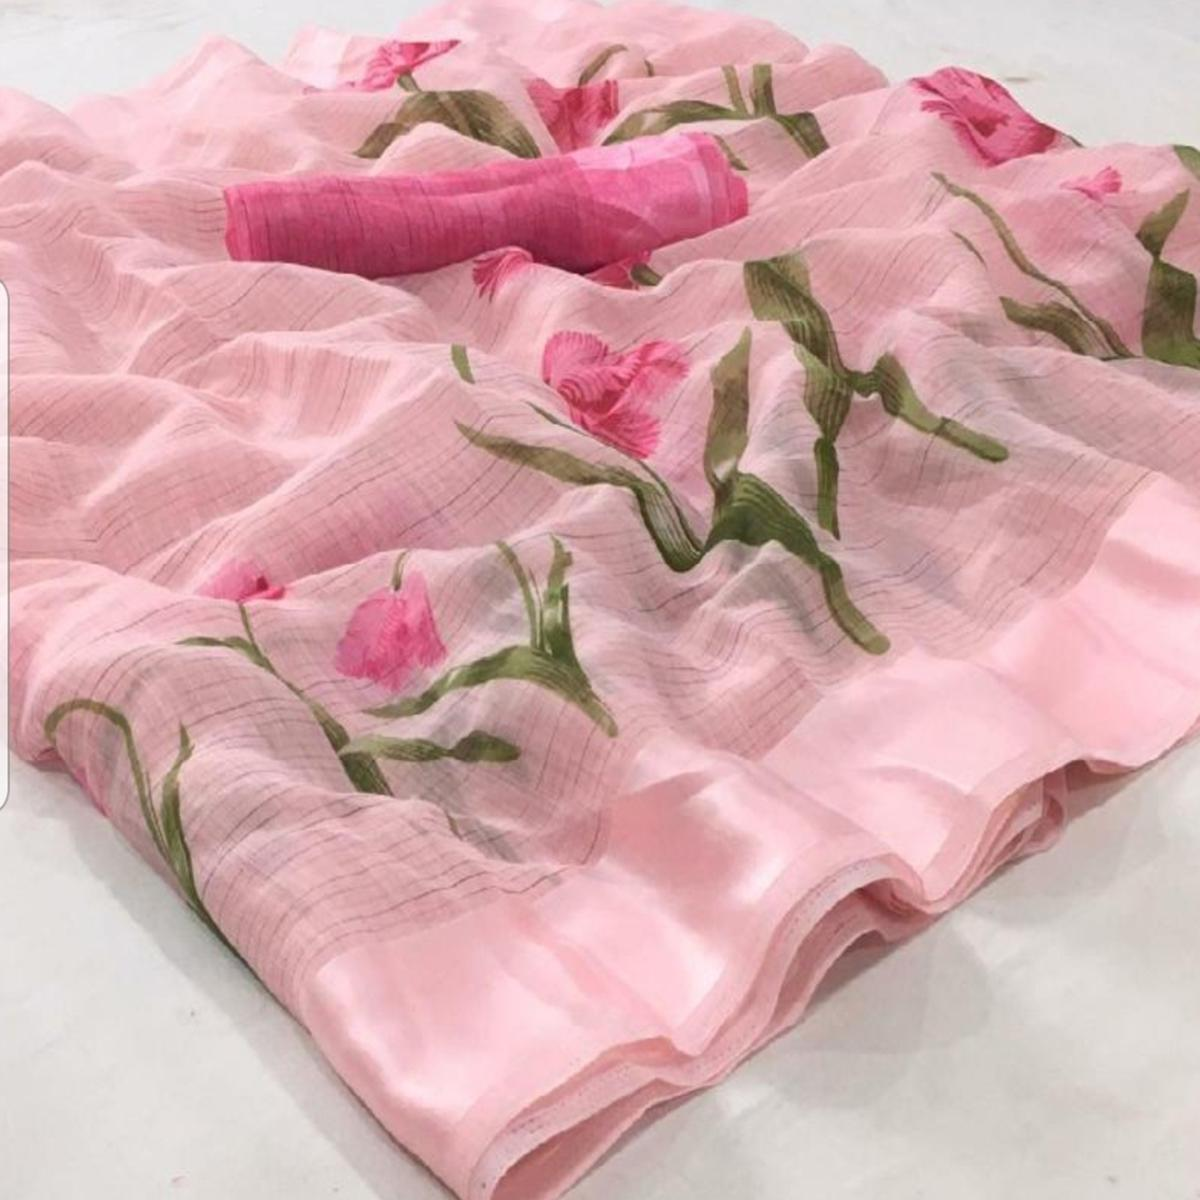 Engrossing Light Pink Colored Casual Wear Floral Printed Linen Saree